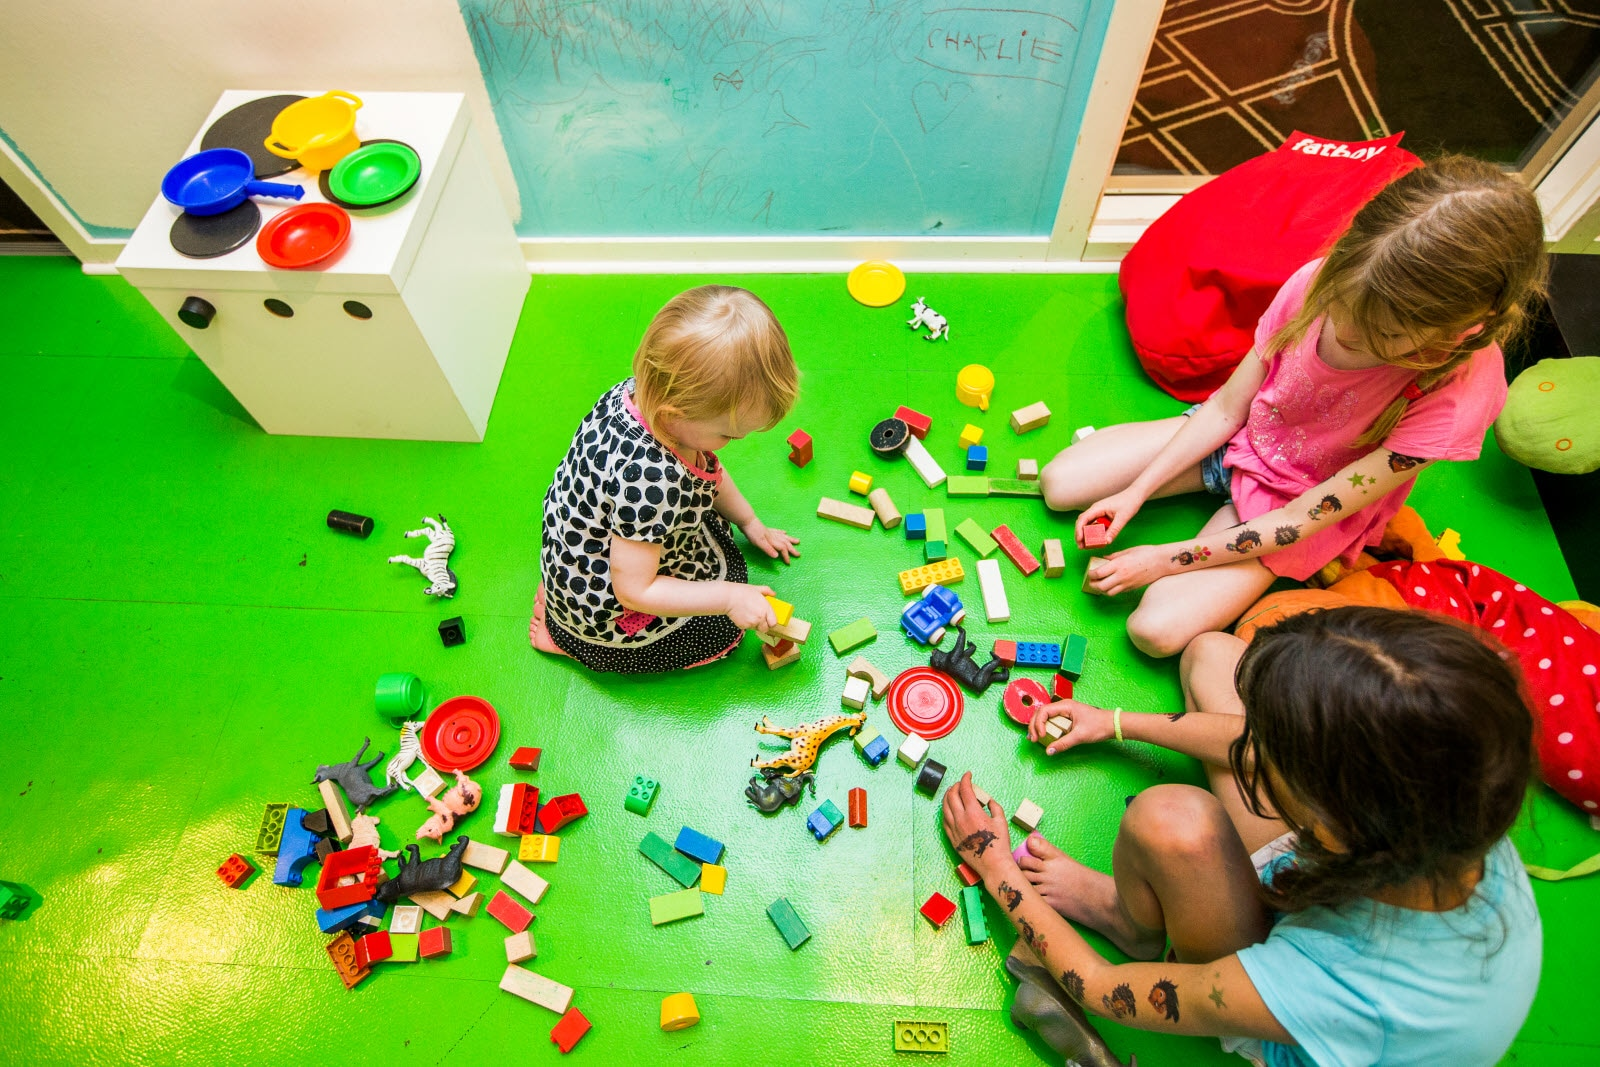 Kids in playroom